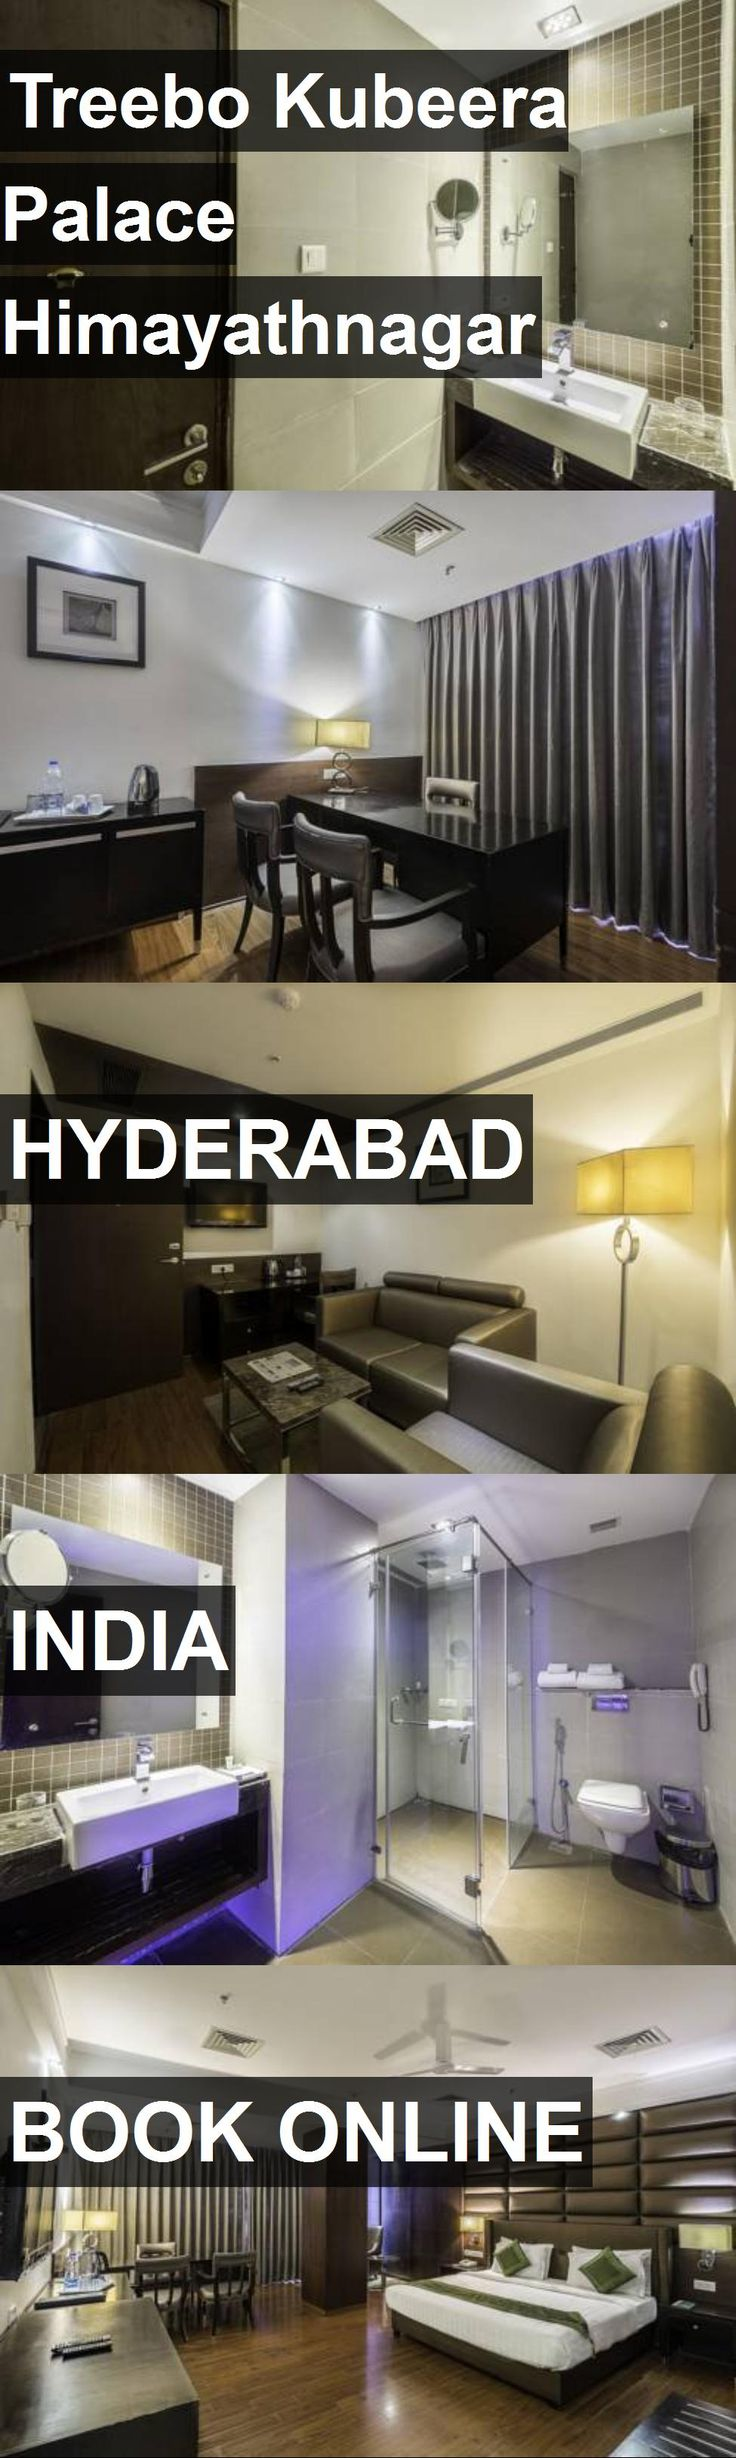 Hotel Treebo Kubeera Palace Himayathnagar in Hyderabad, India. For more information, photos, reviews and best prices please follow the link. #India #Hyderabad #travel #vacation #hotel